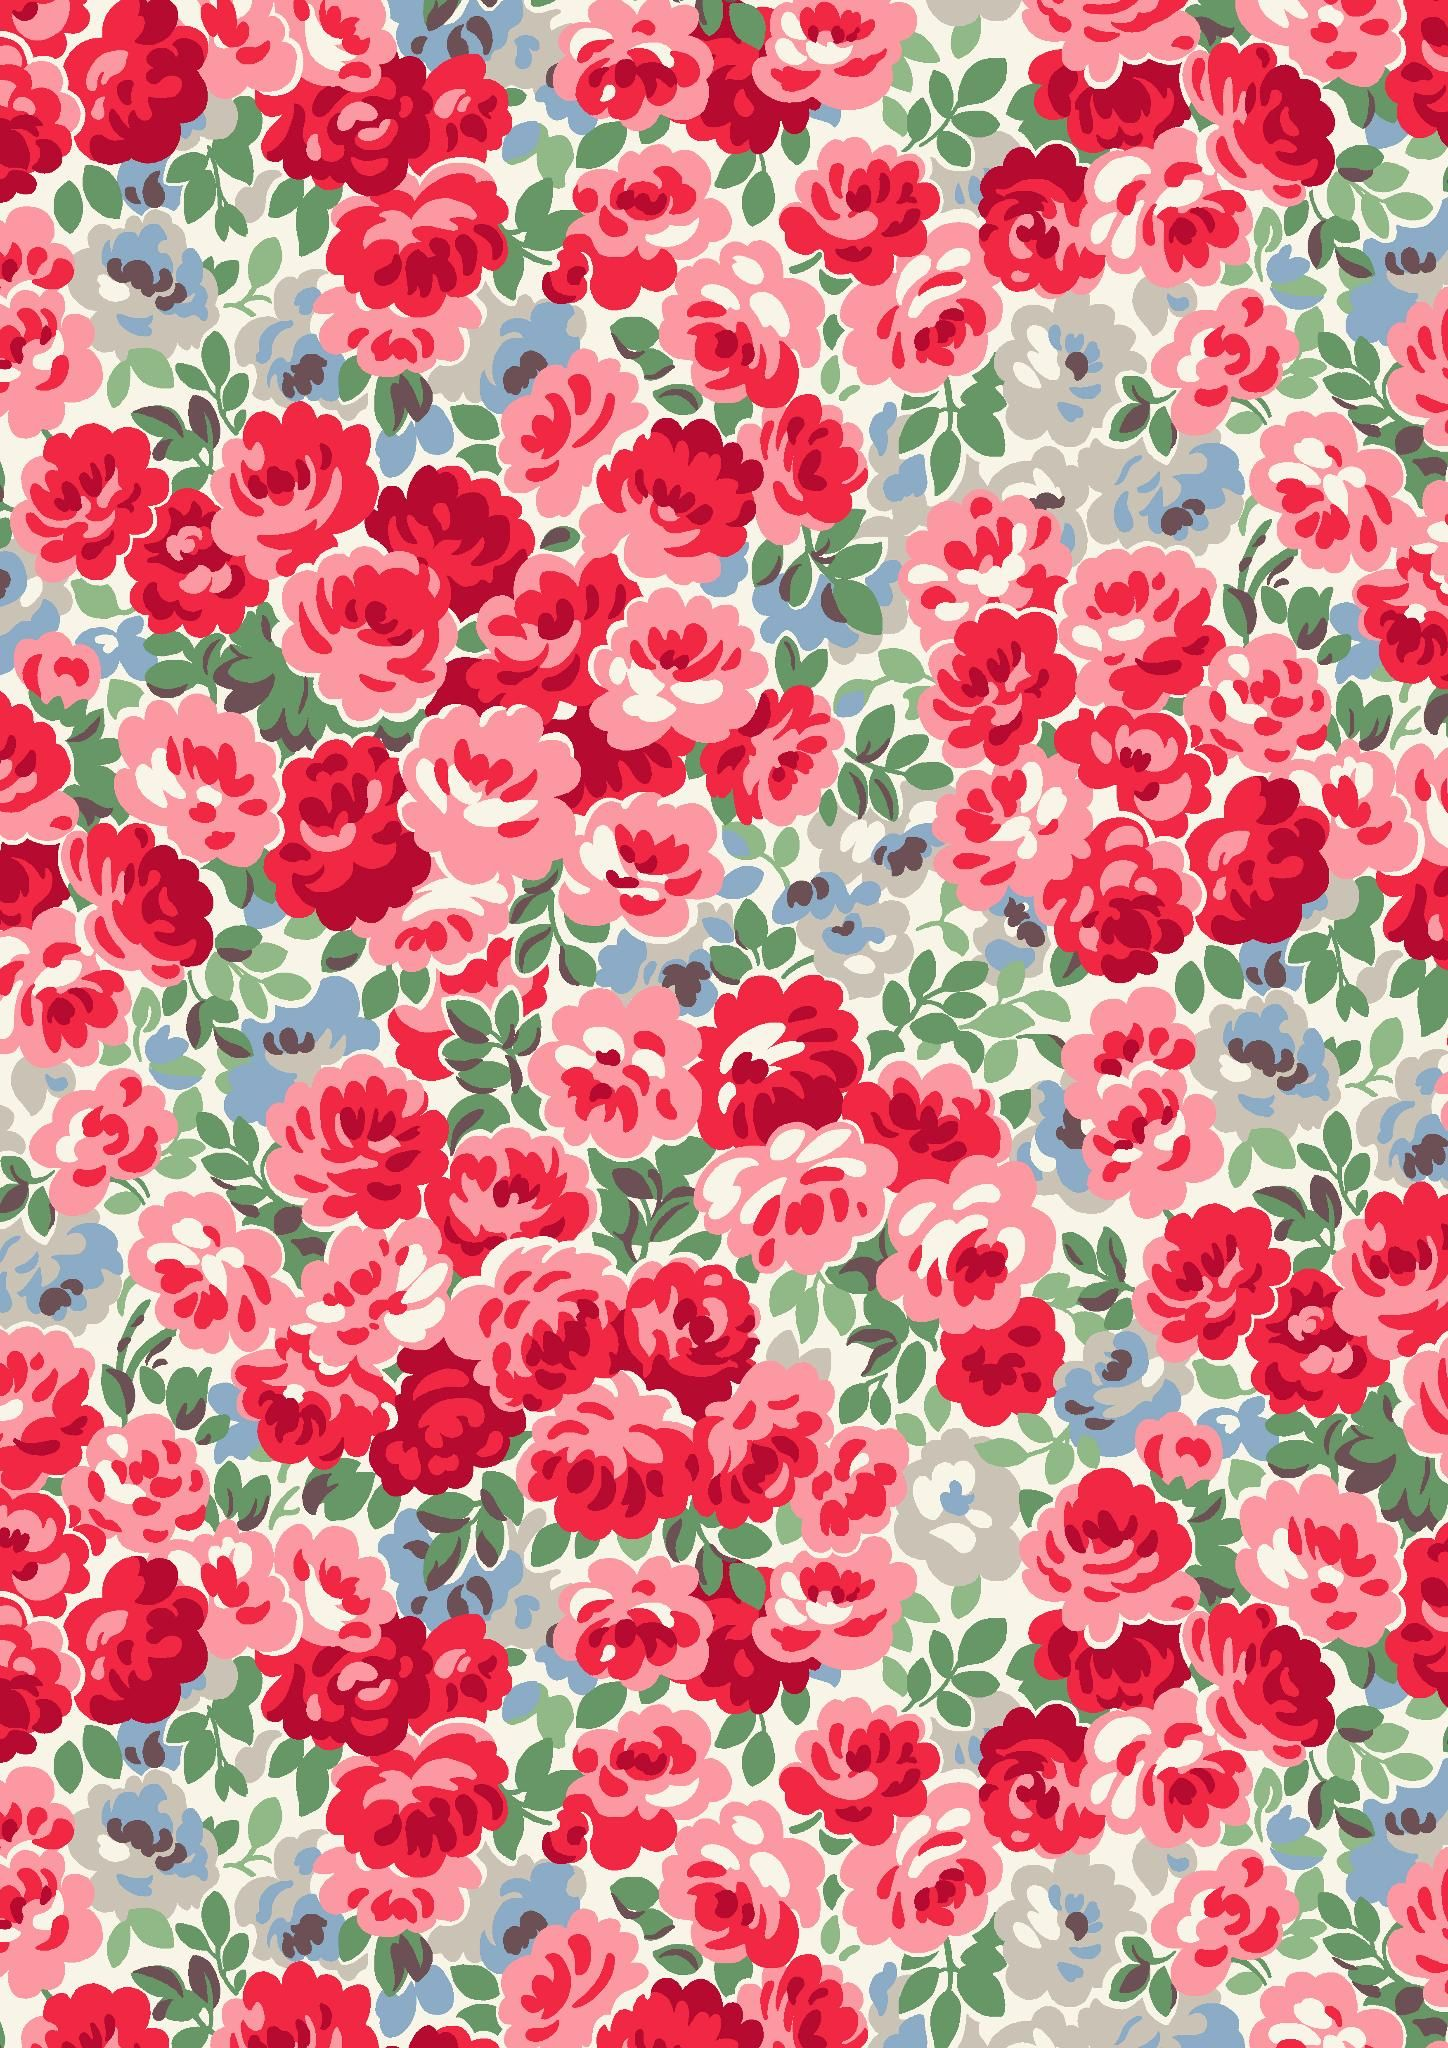 Festive Florals | Pattern wallpaper, Iphone wallpaper ...